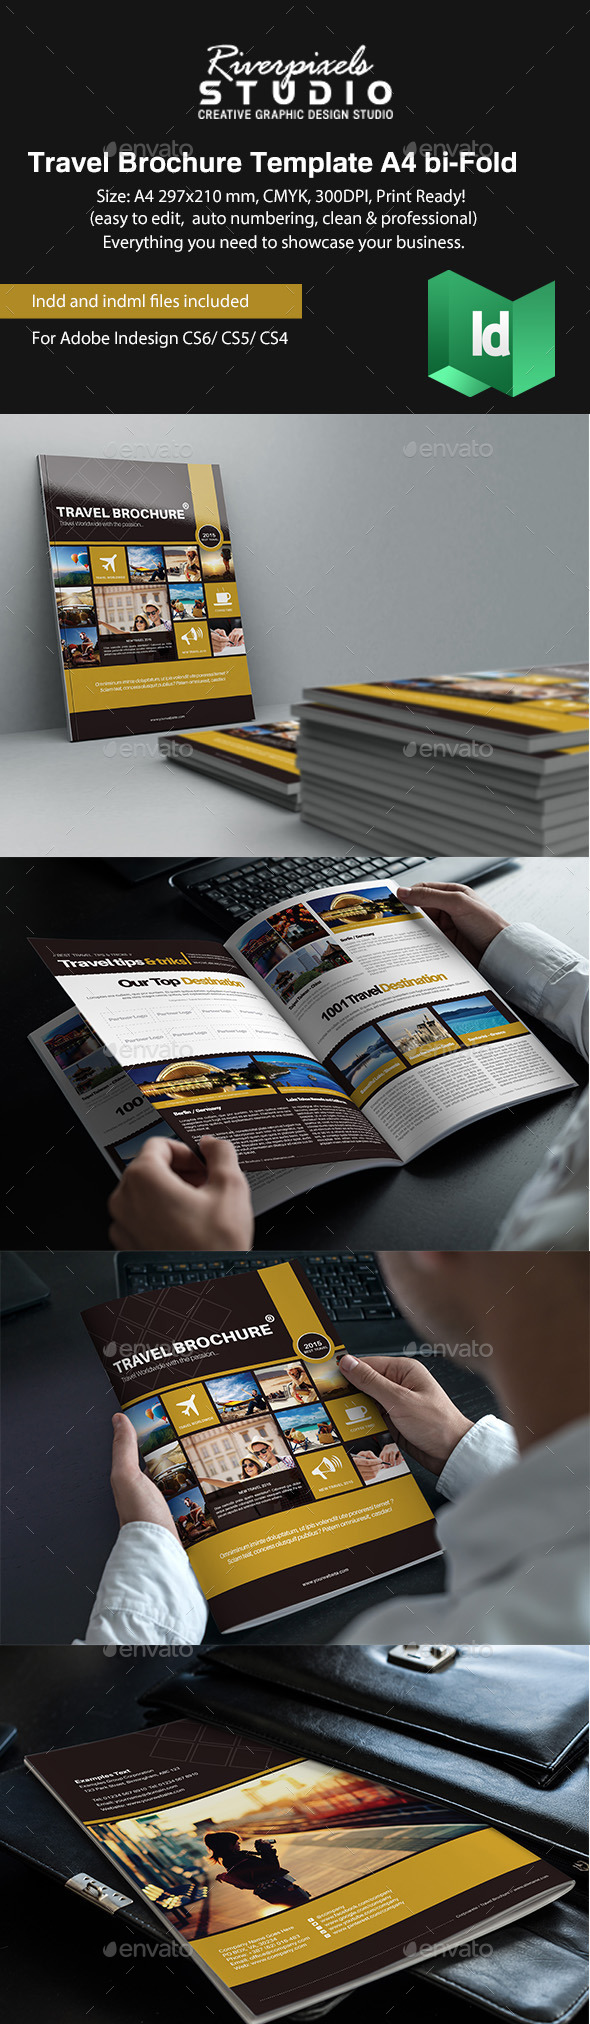 GraphicRiver Travel Brochure Template A4 Bi-Fold 10440925